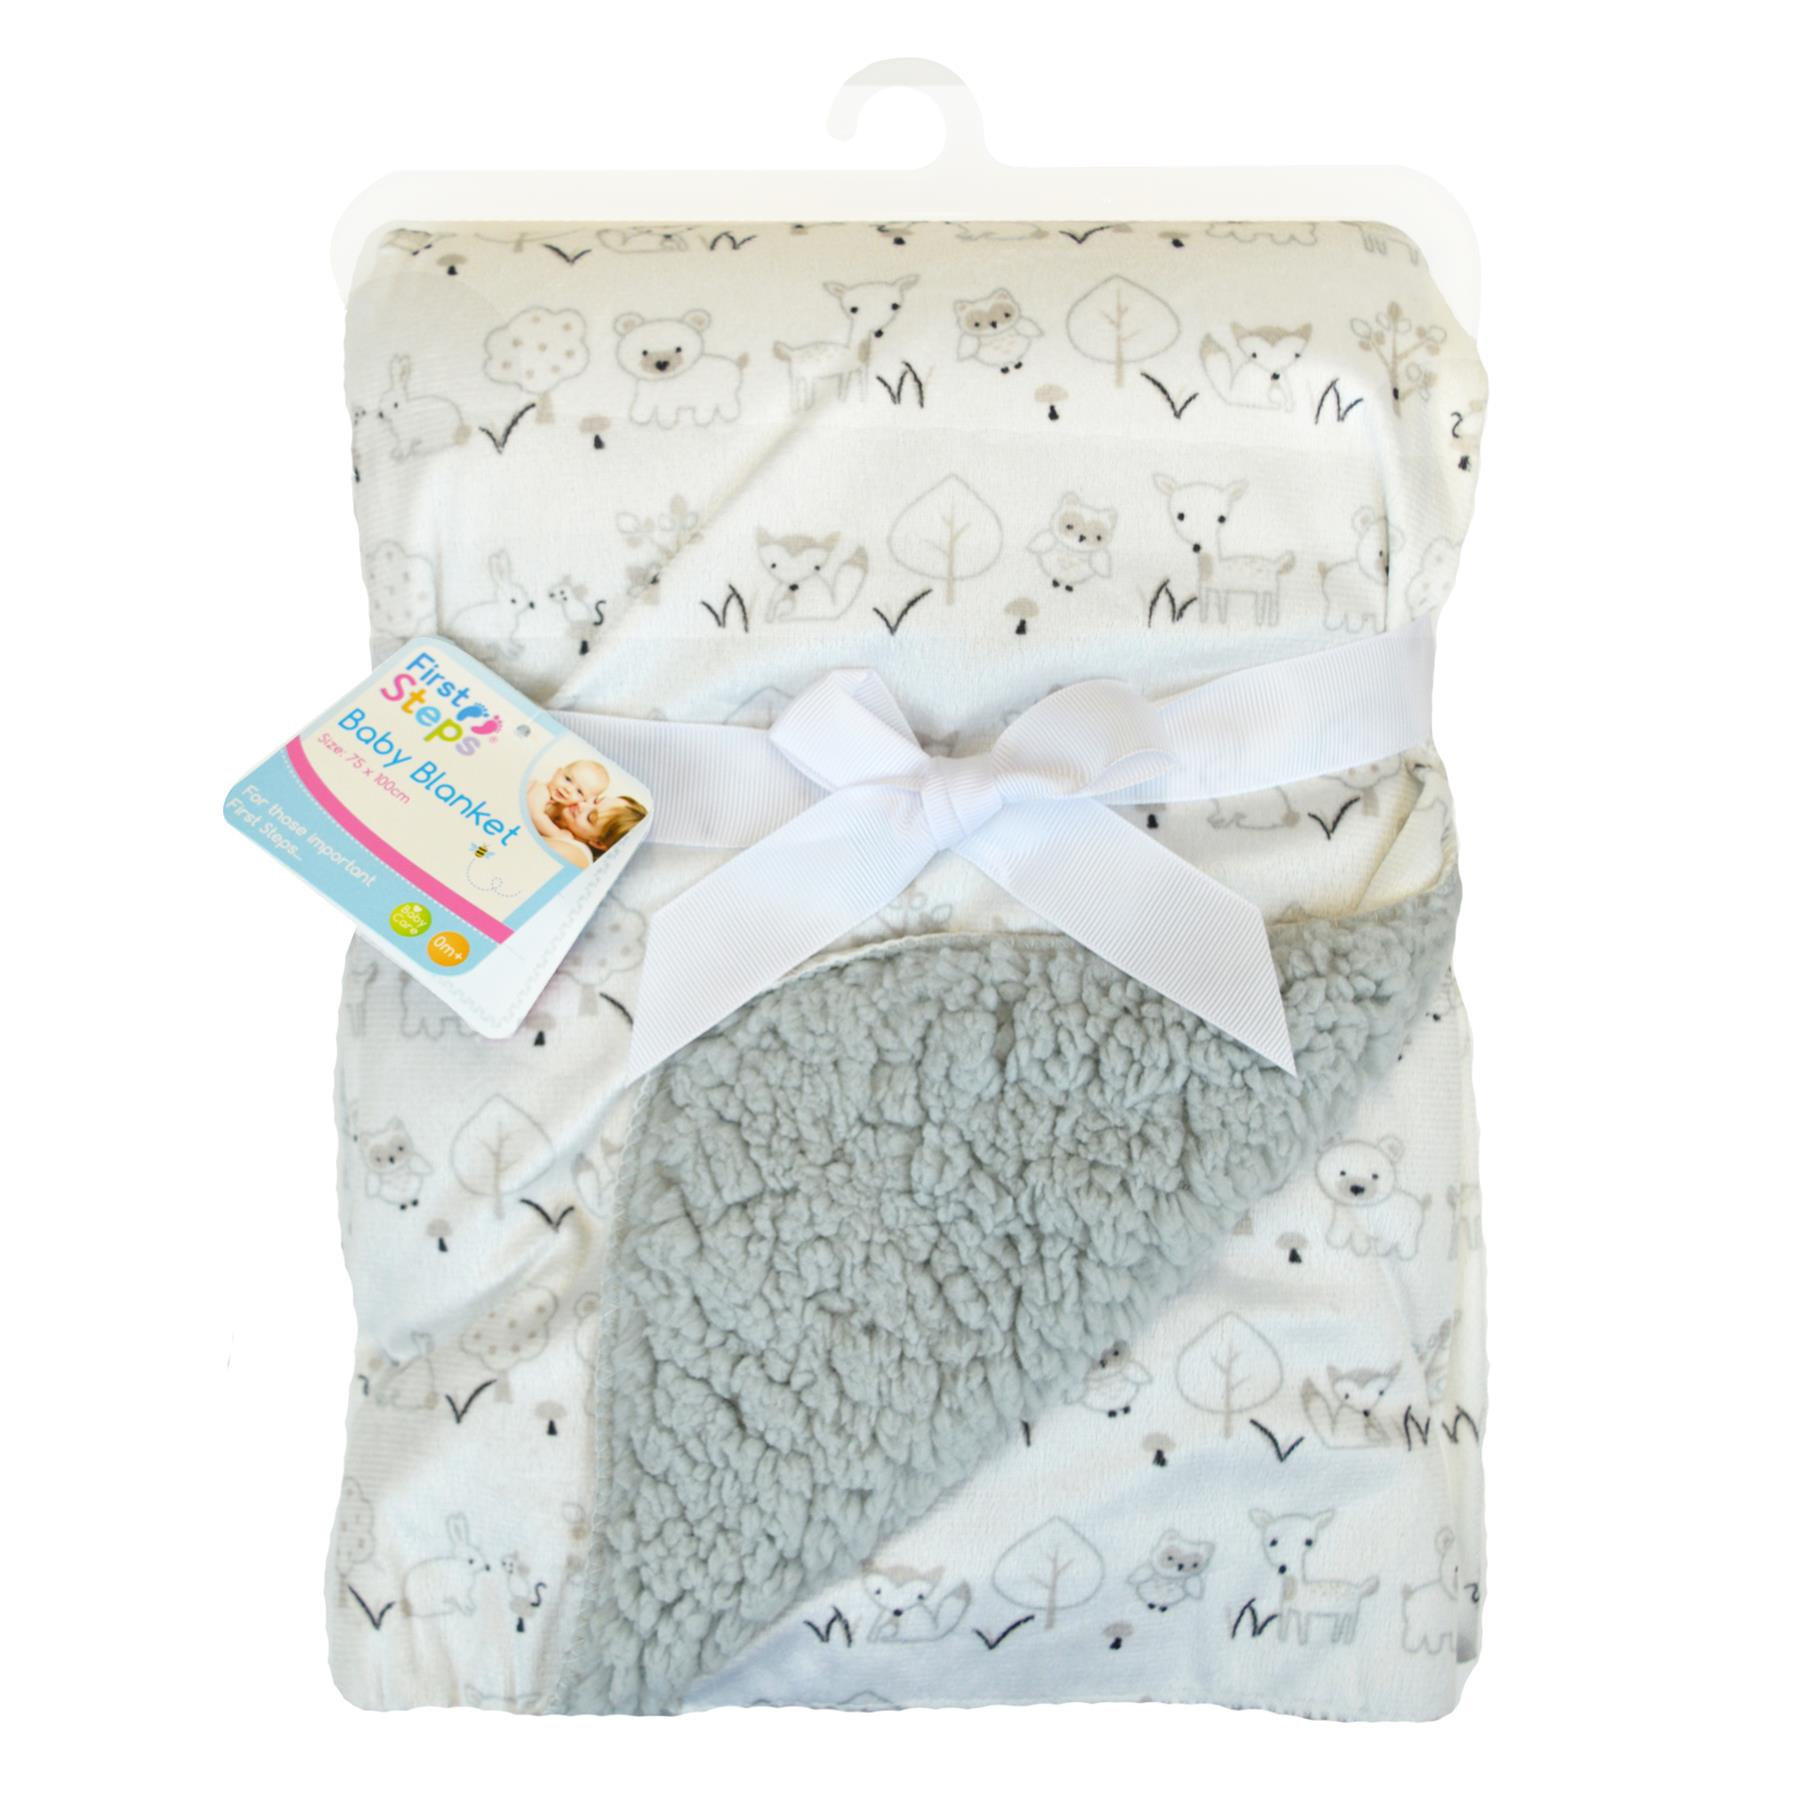 Babies Soft Fleece Blanket Wrap Teddy Bears 75 x 100cm